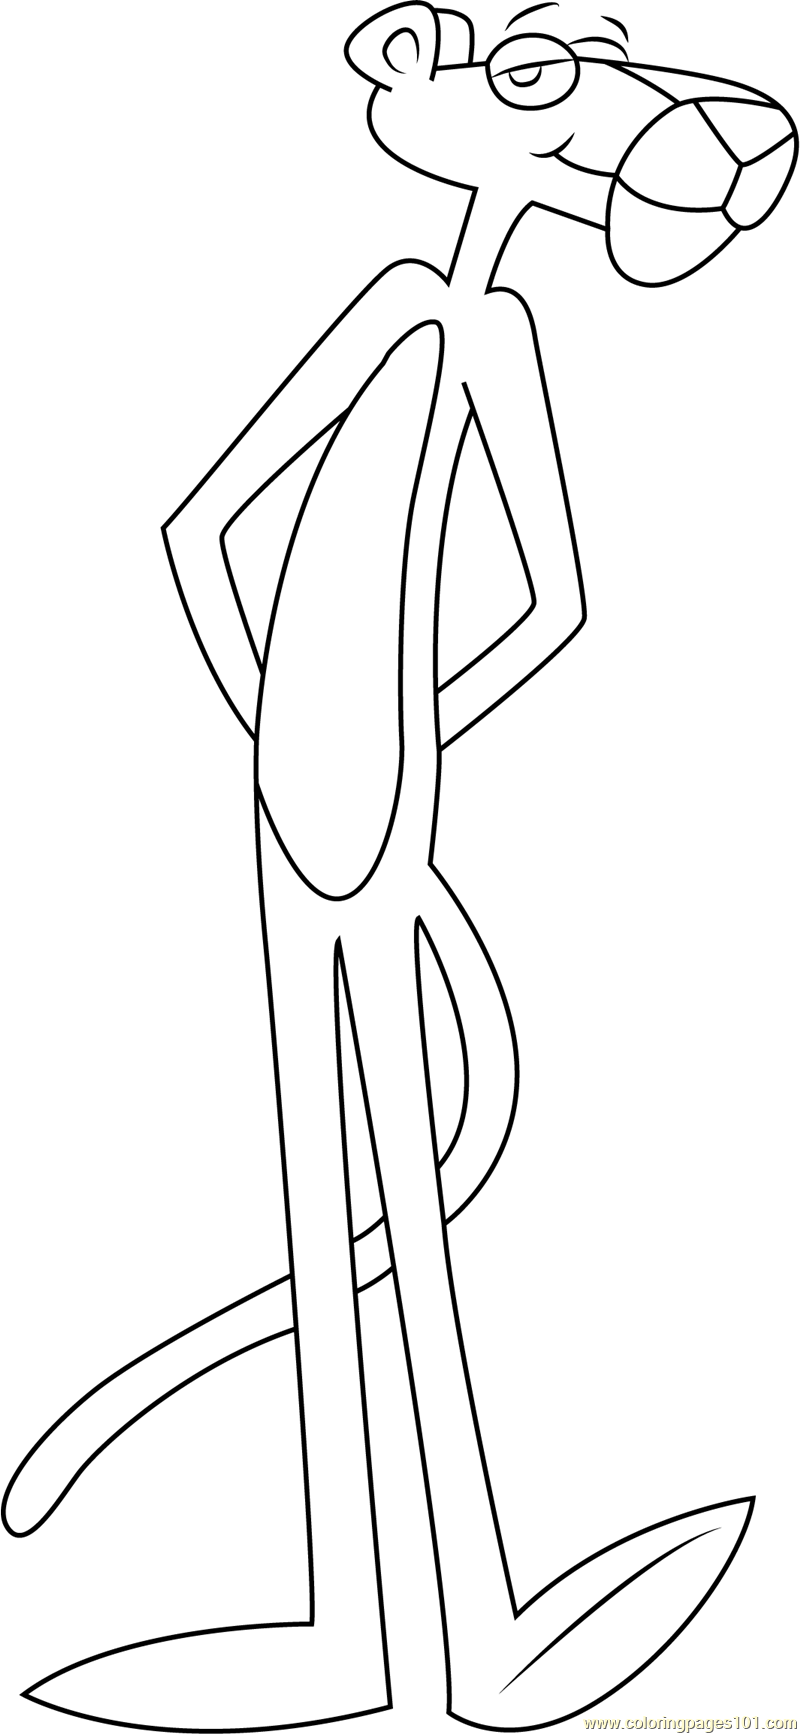 pink panther coloring games panther drawing outline at getdrawings free download games coloring panther pink